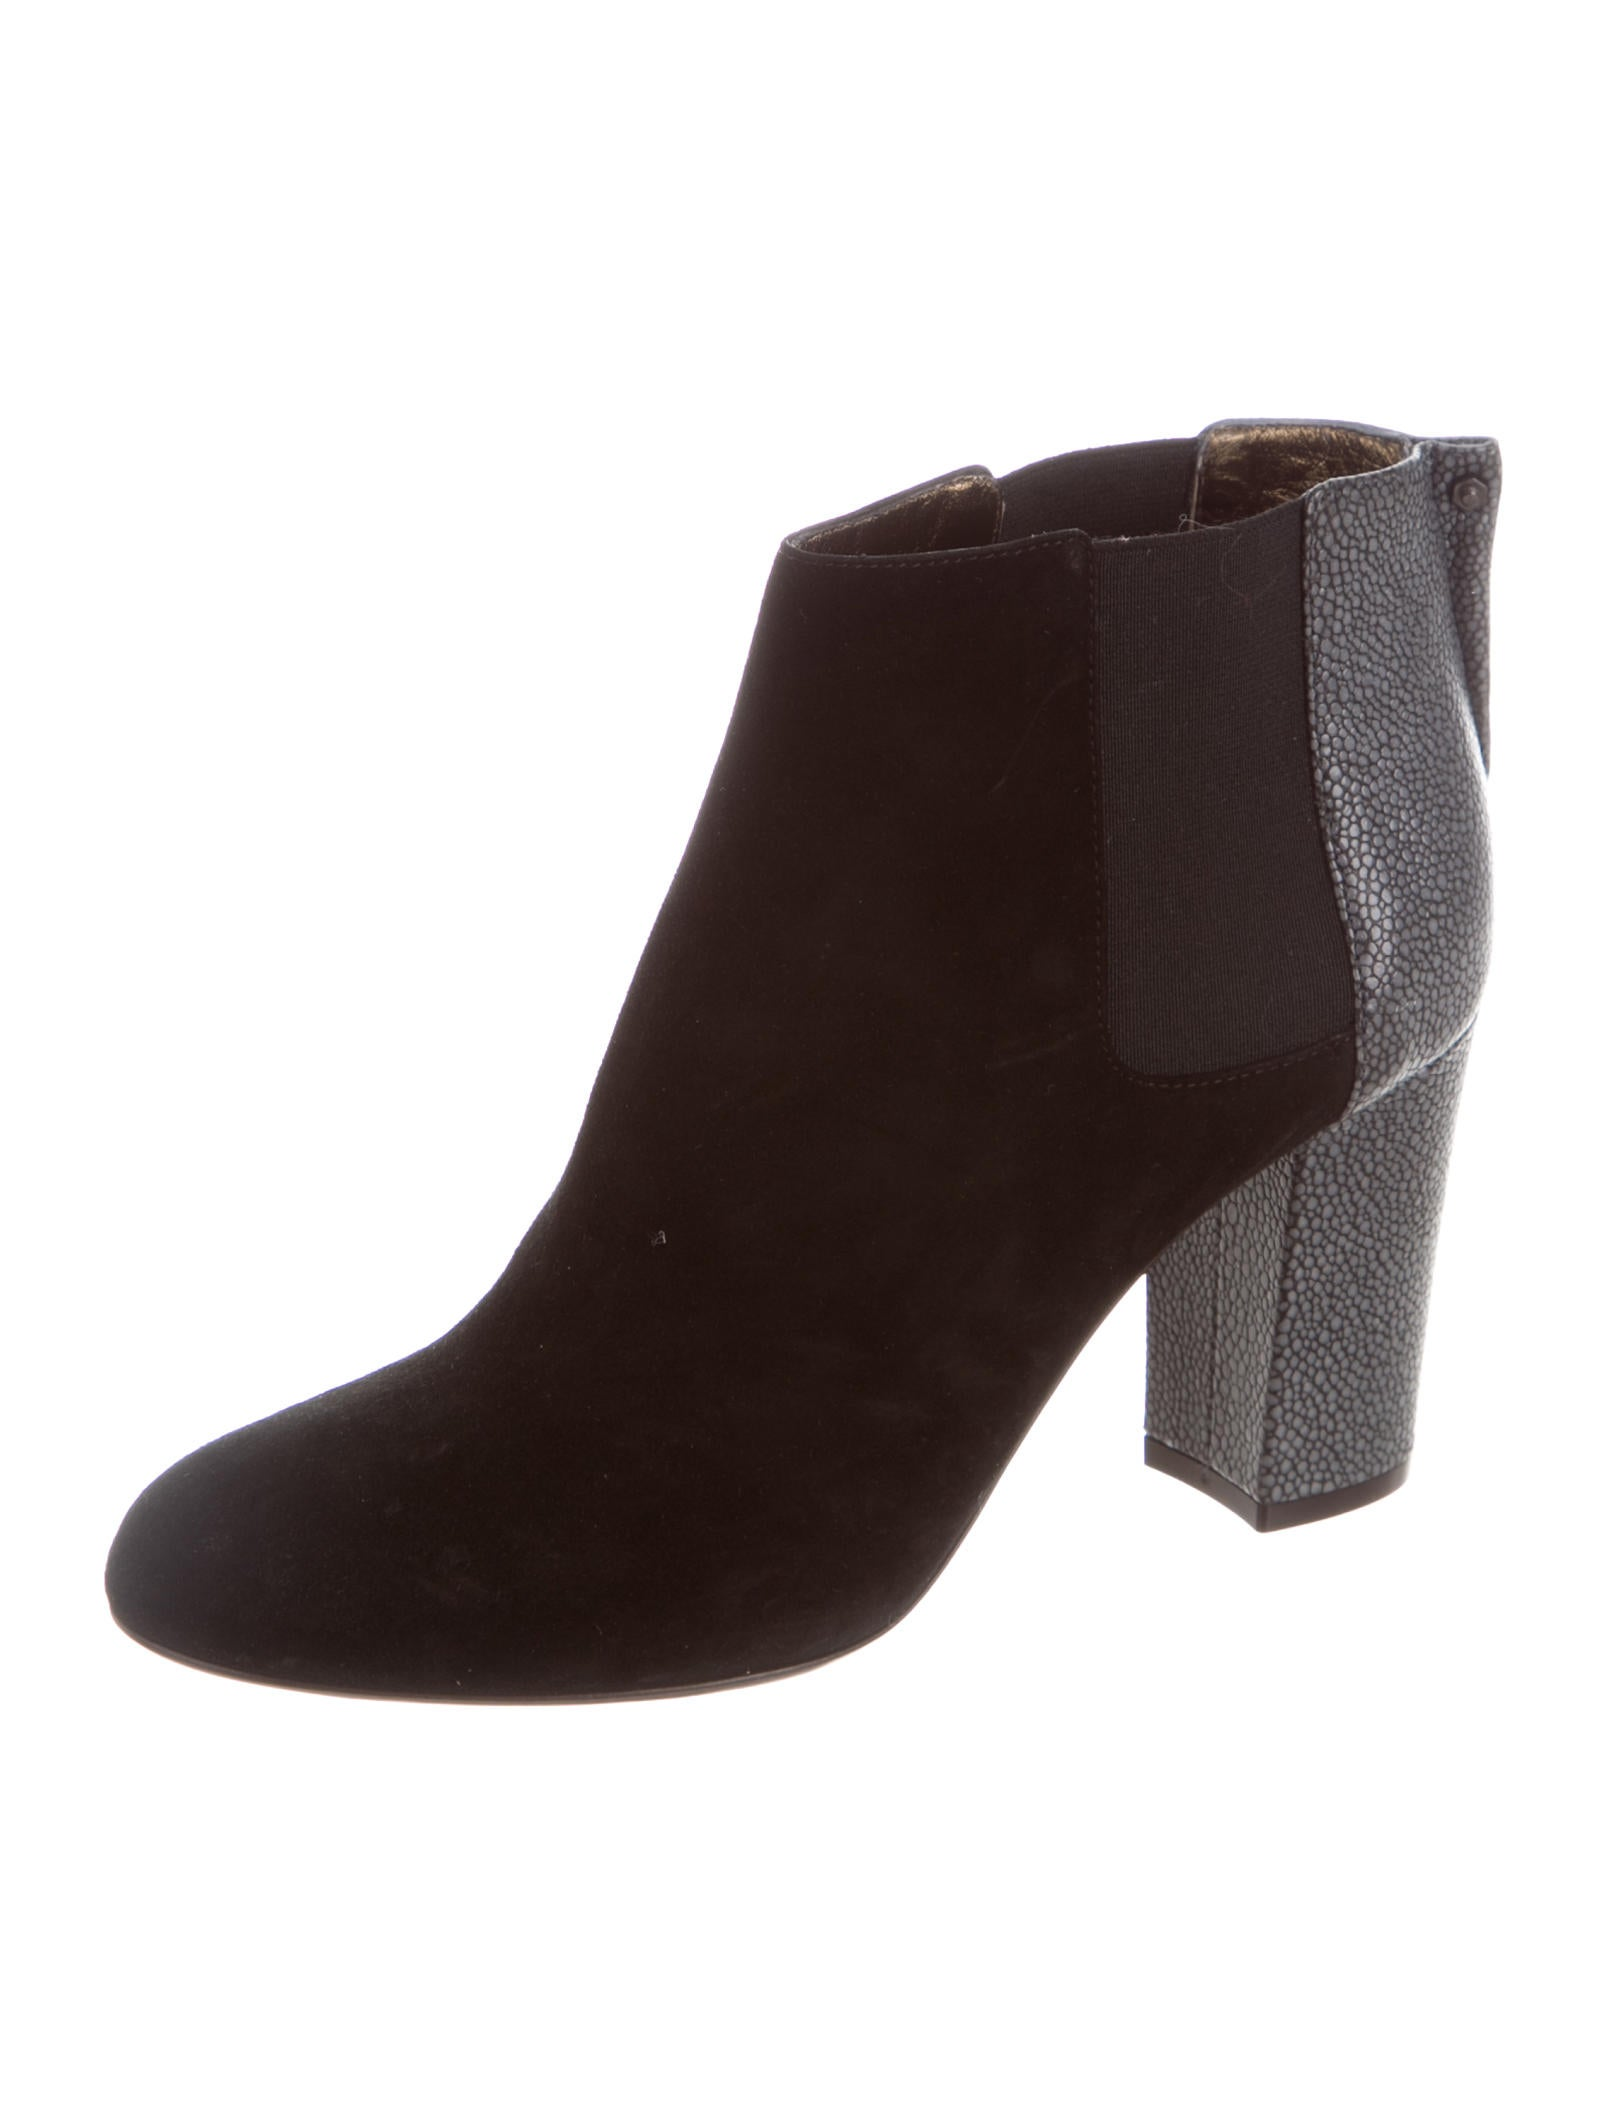 lanvin suede ankle boots shoes lan59869 the realreal